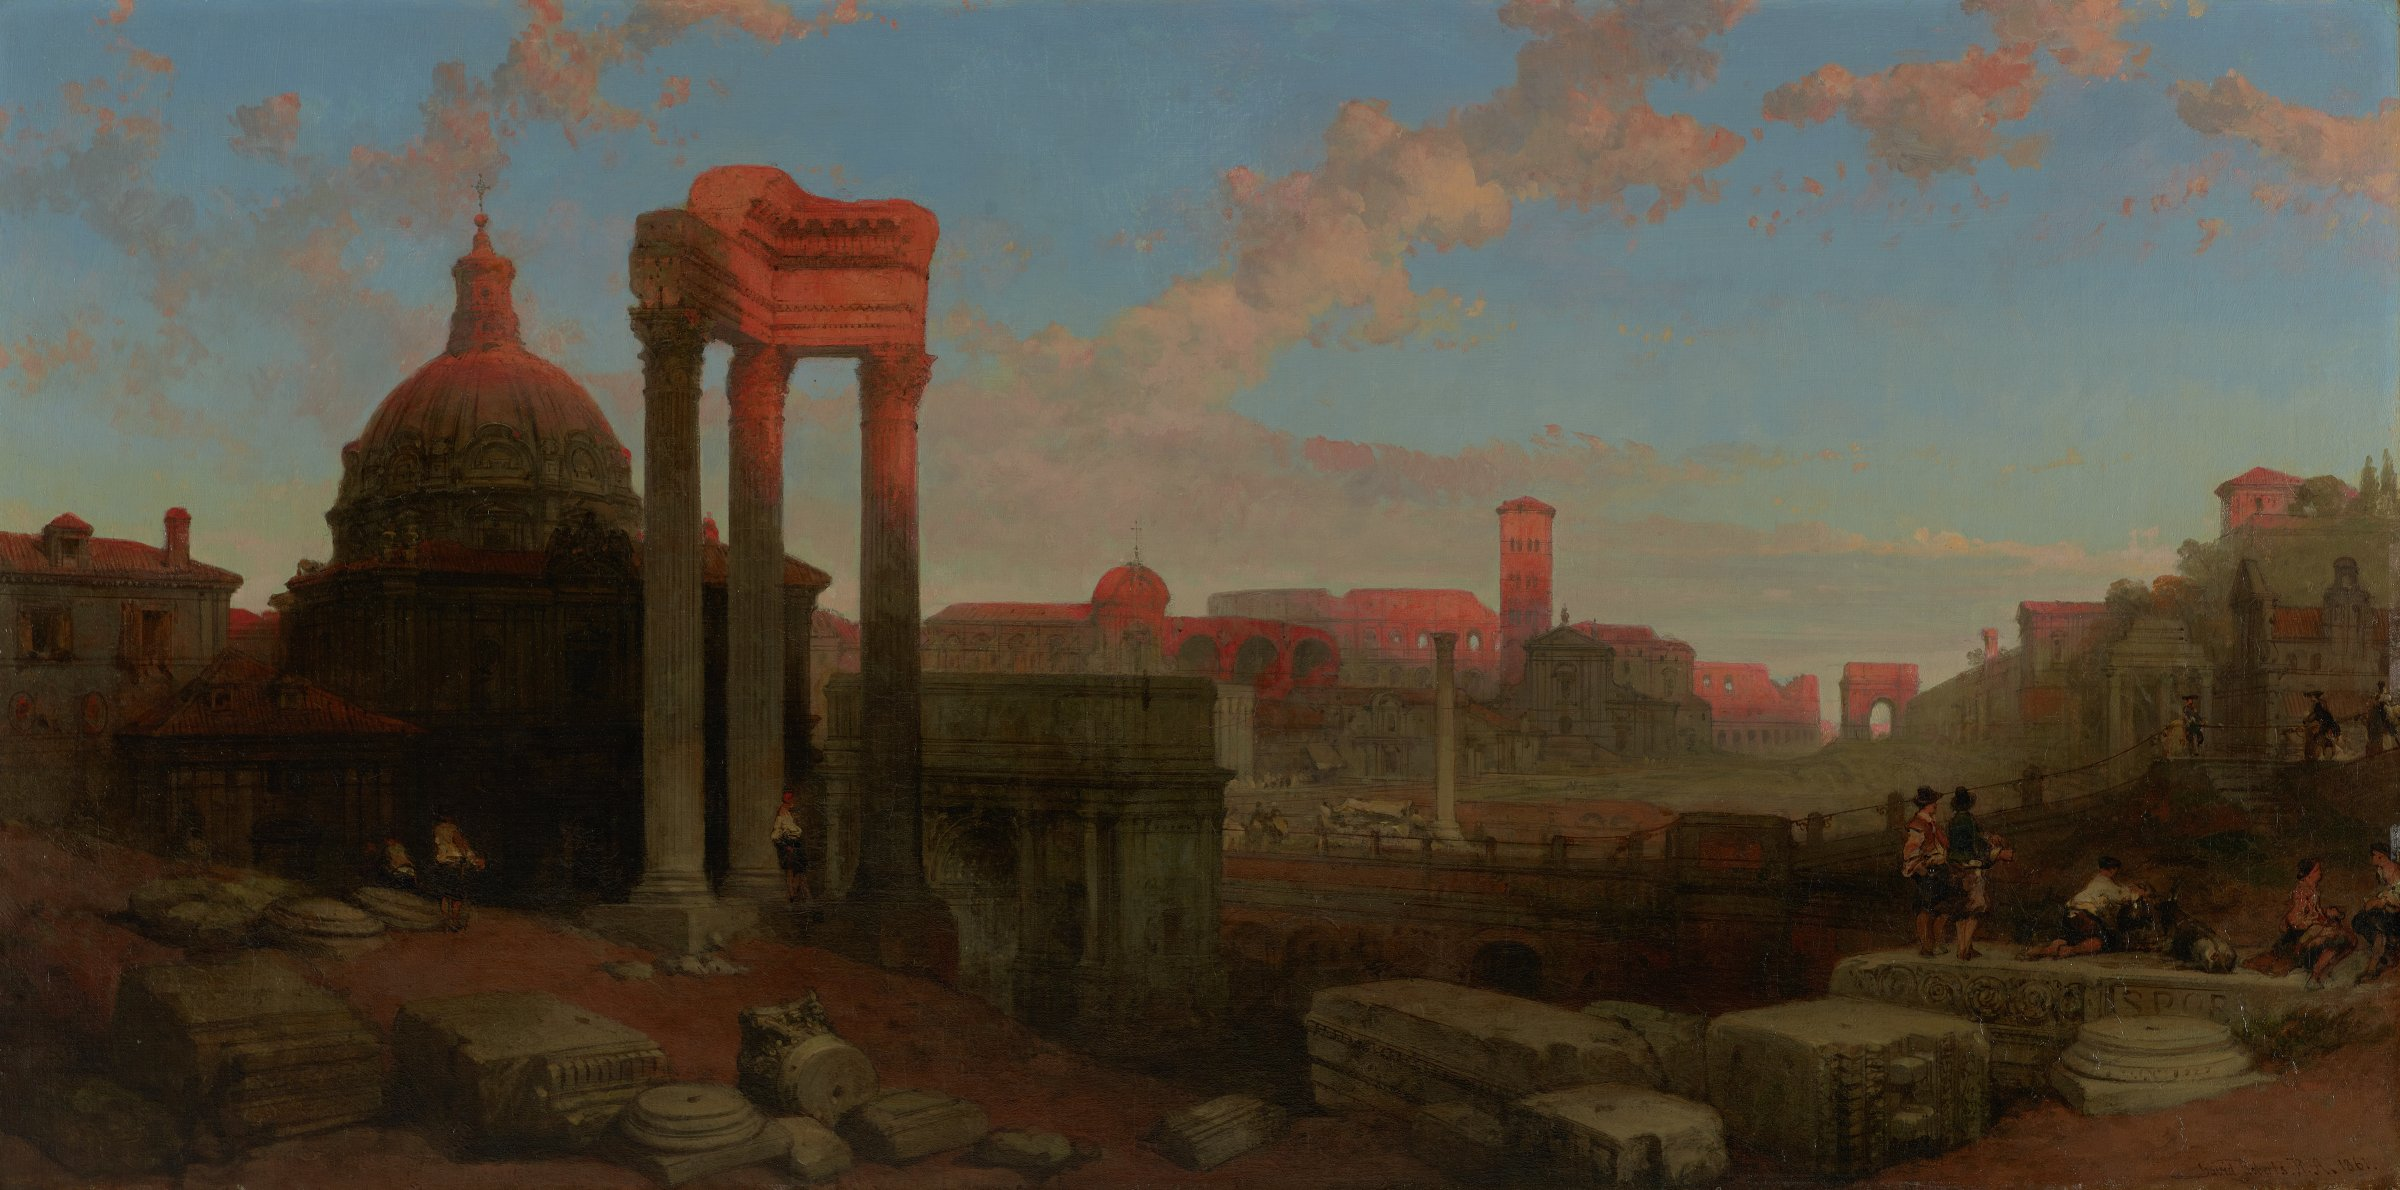 The Remains of the Roman Forum, David Roberts, oil on canvas